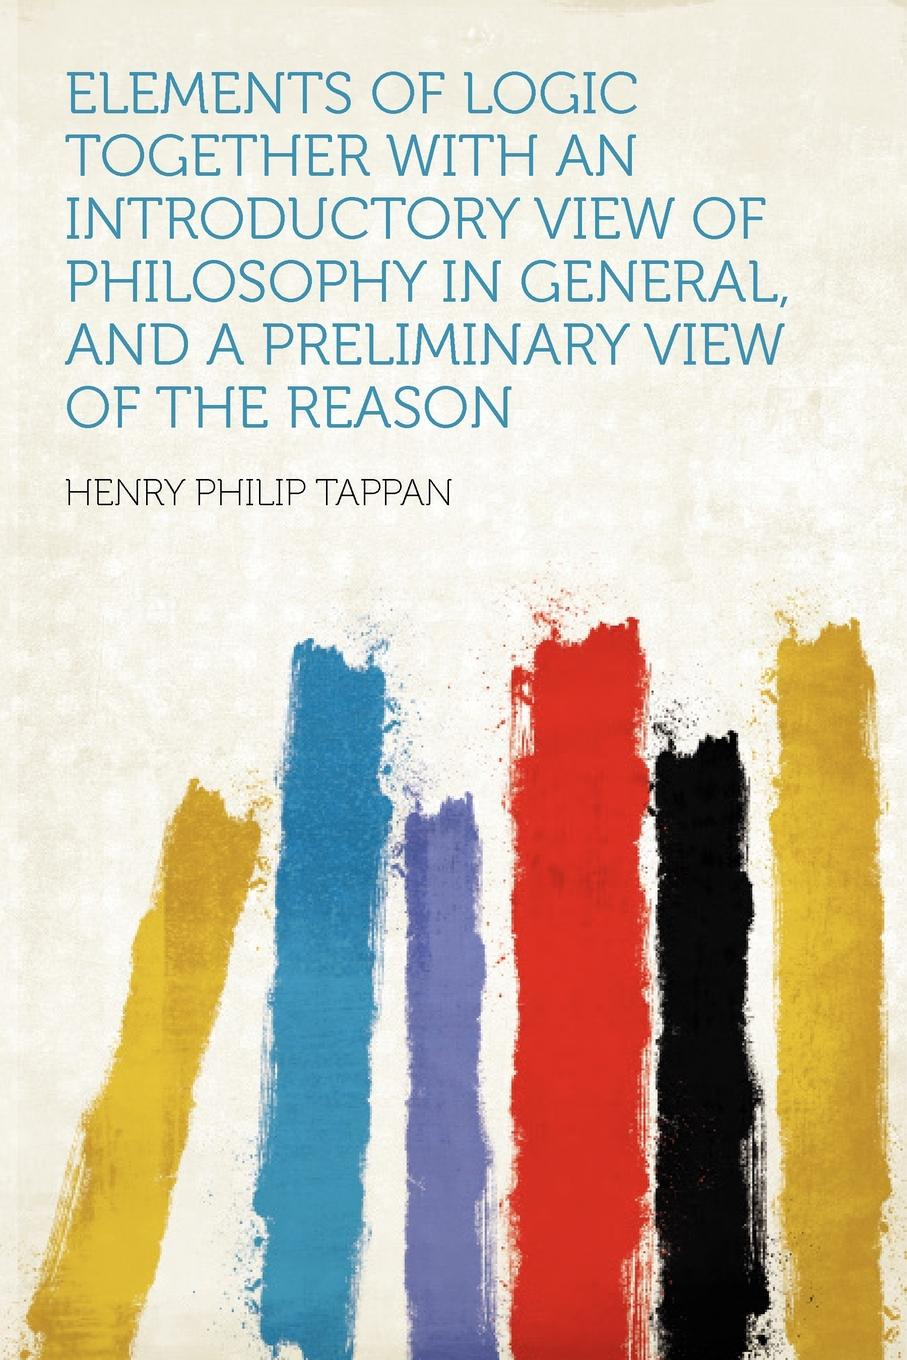 Elements of Logic Together With an Introductory View of Philosophy in General, and a Preliminary View of the Reason. Henry Philip Tappan